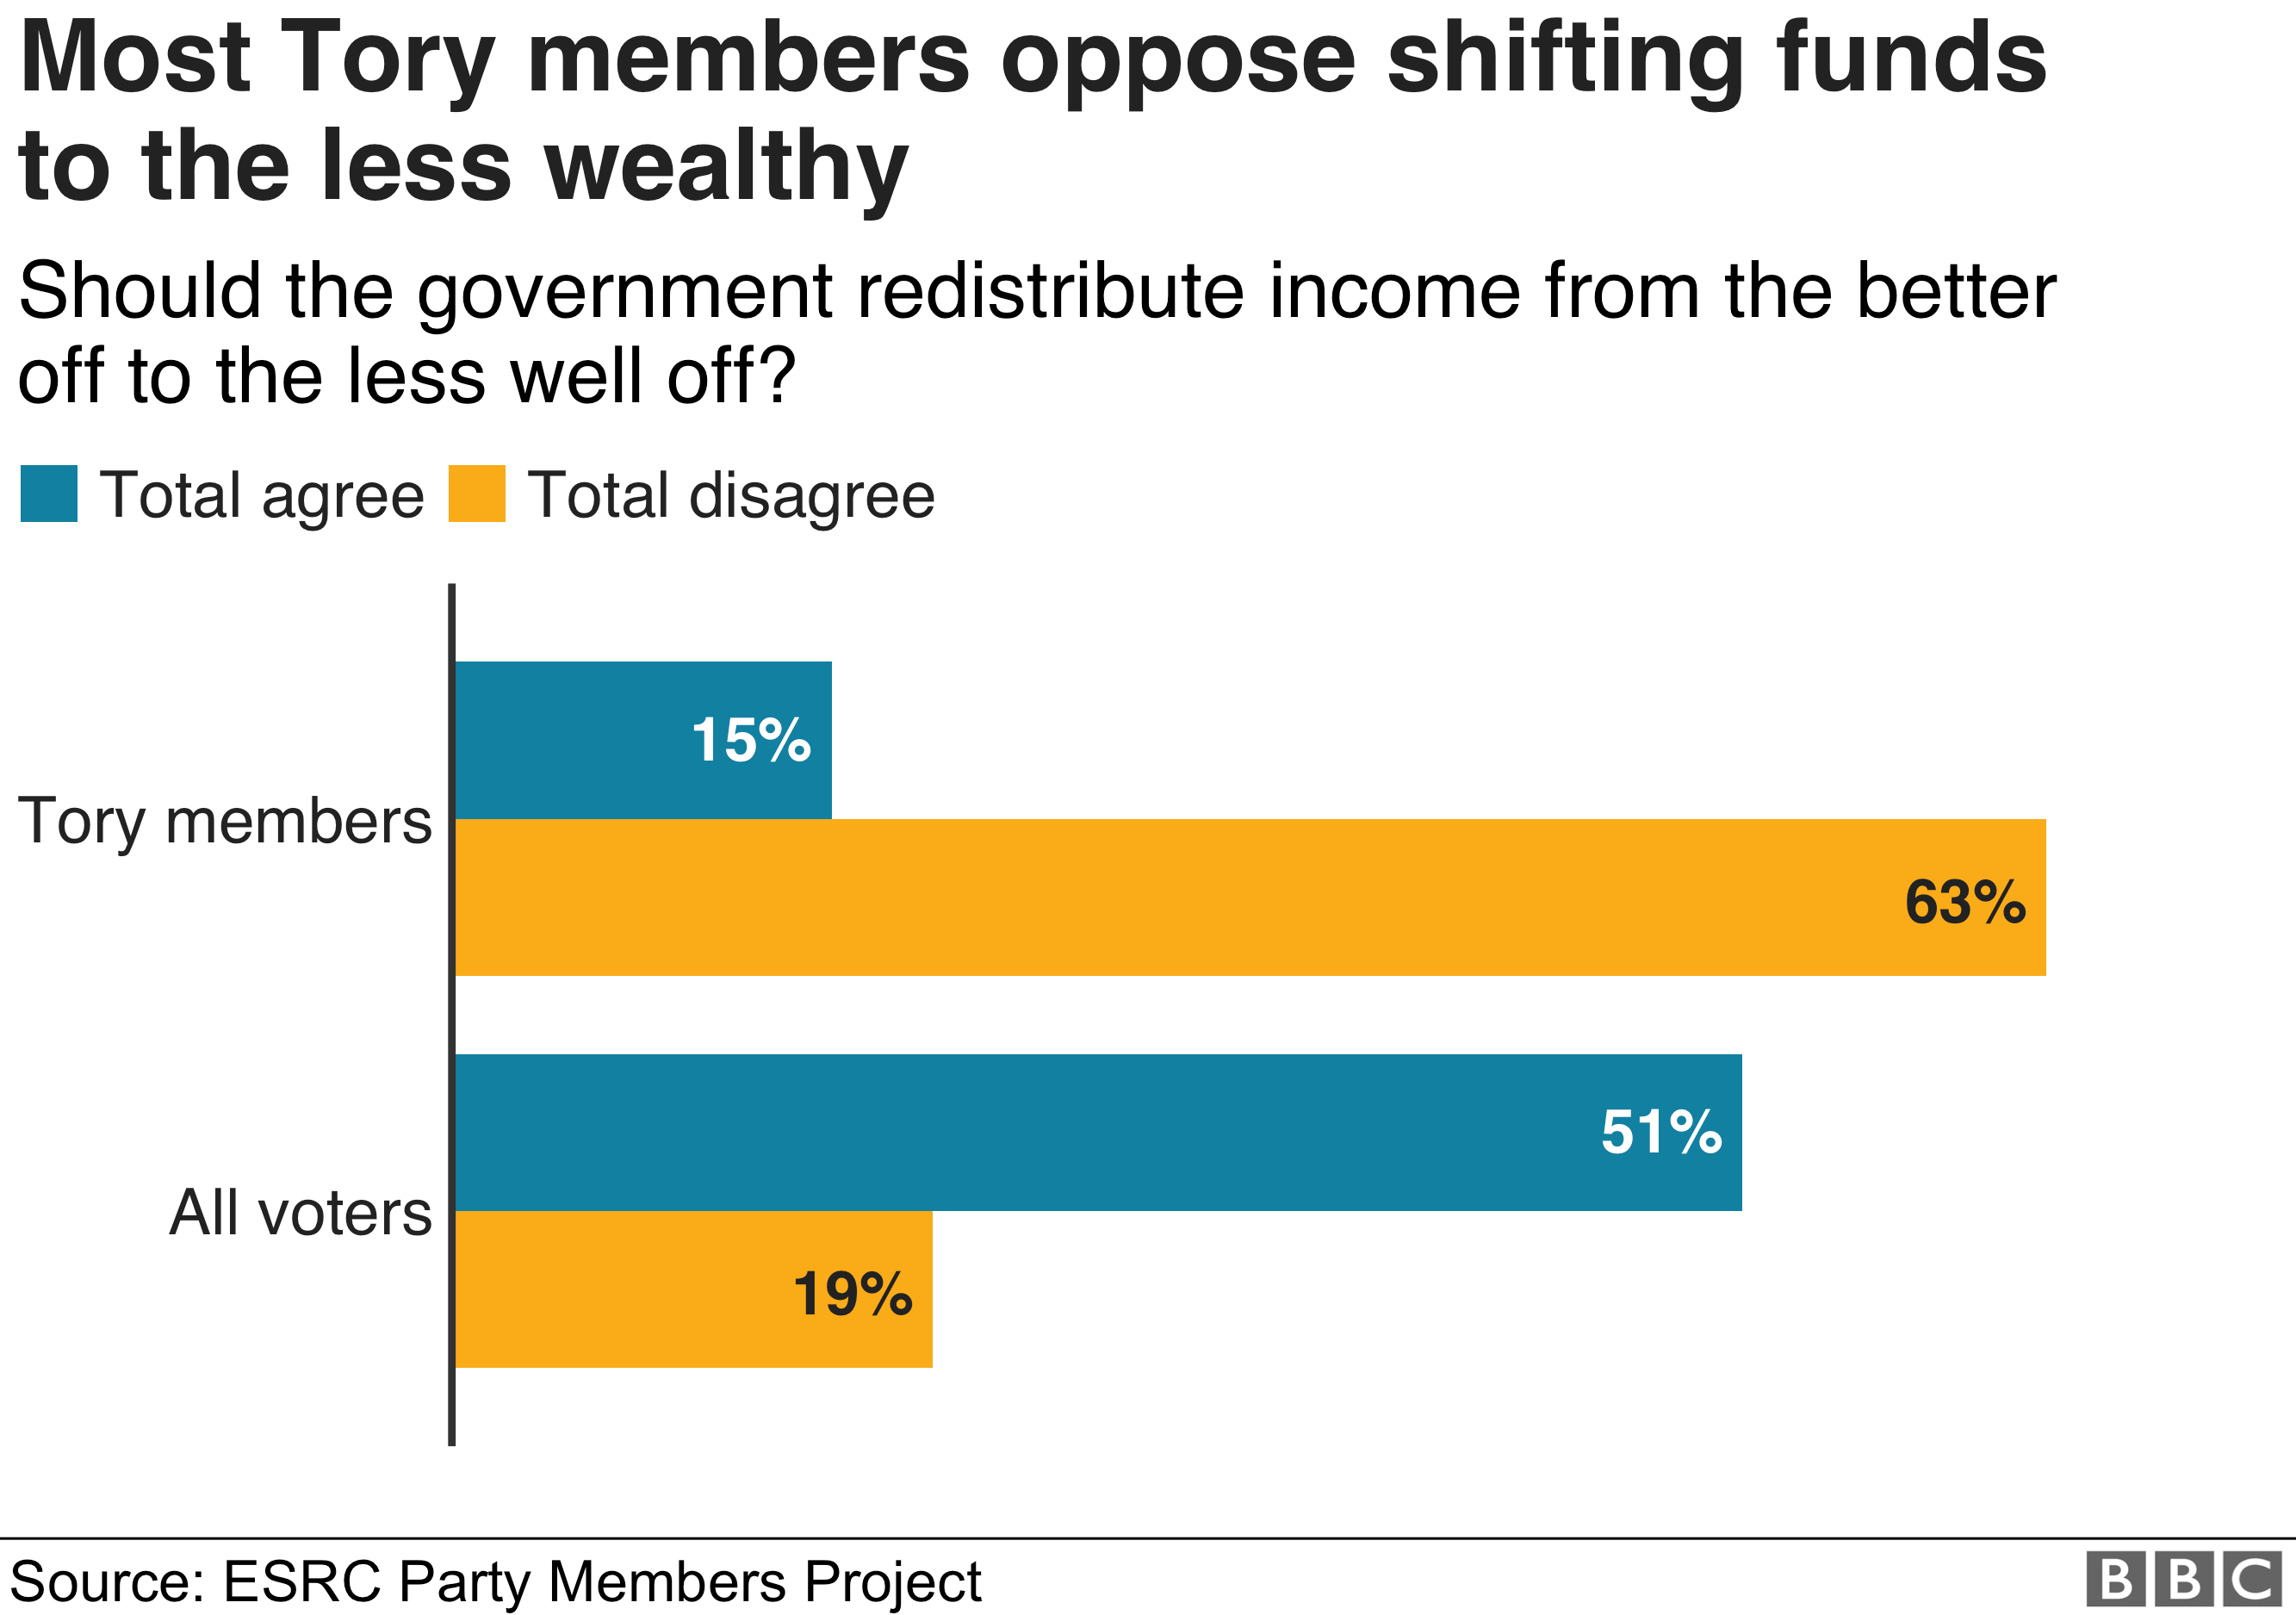 Bar chart showing that Tory members are less likely to want wealth distributed to the less well off, compared to the rest of the voting population